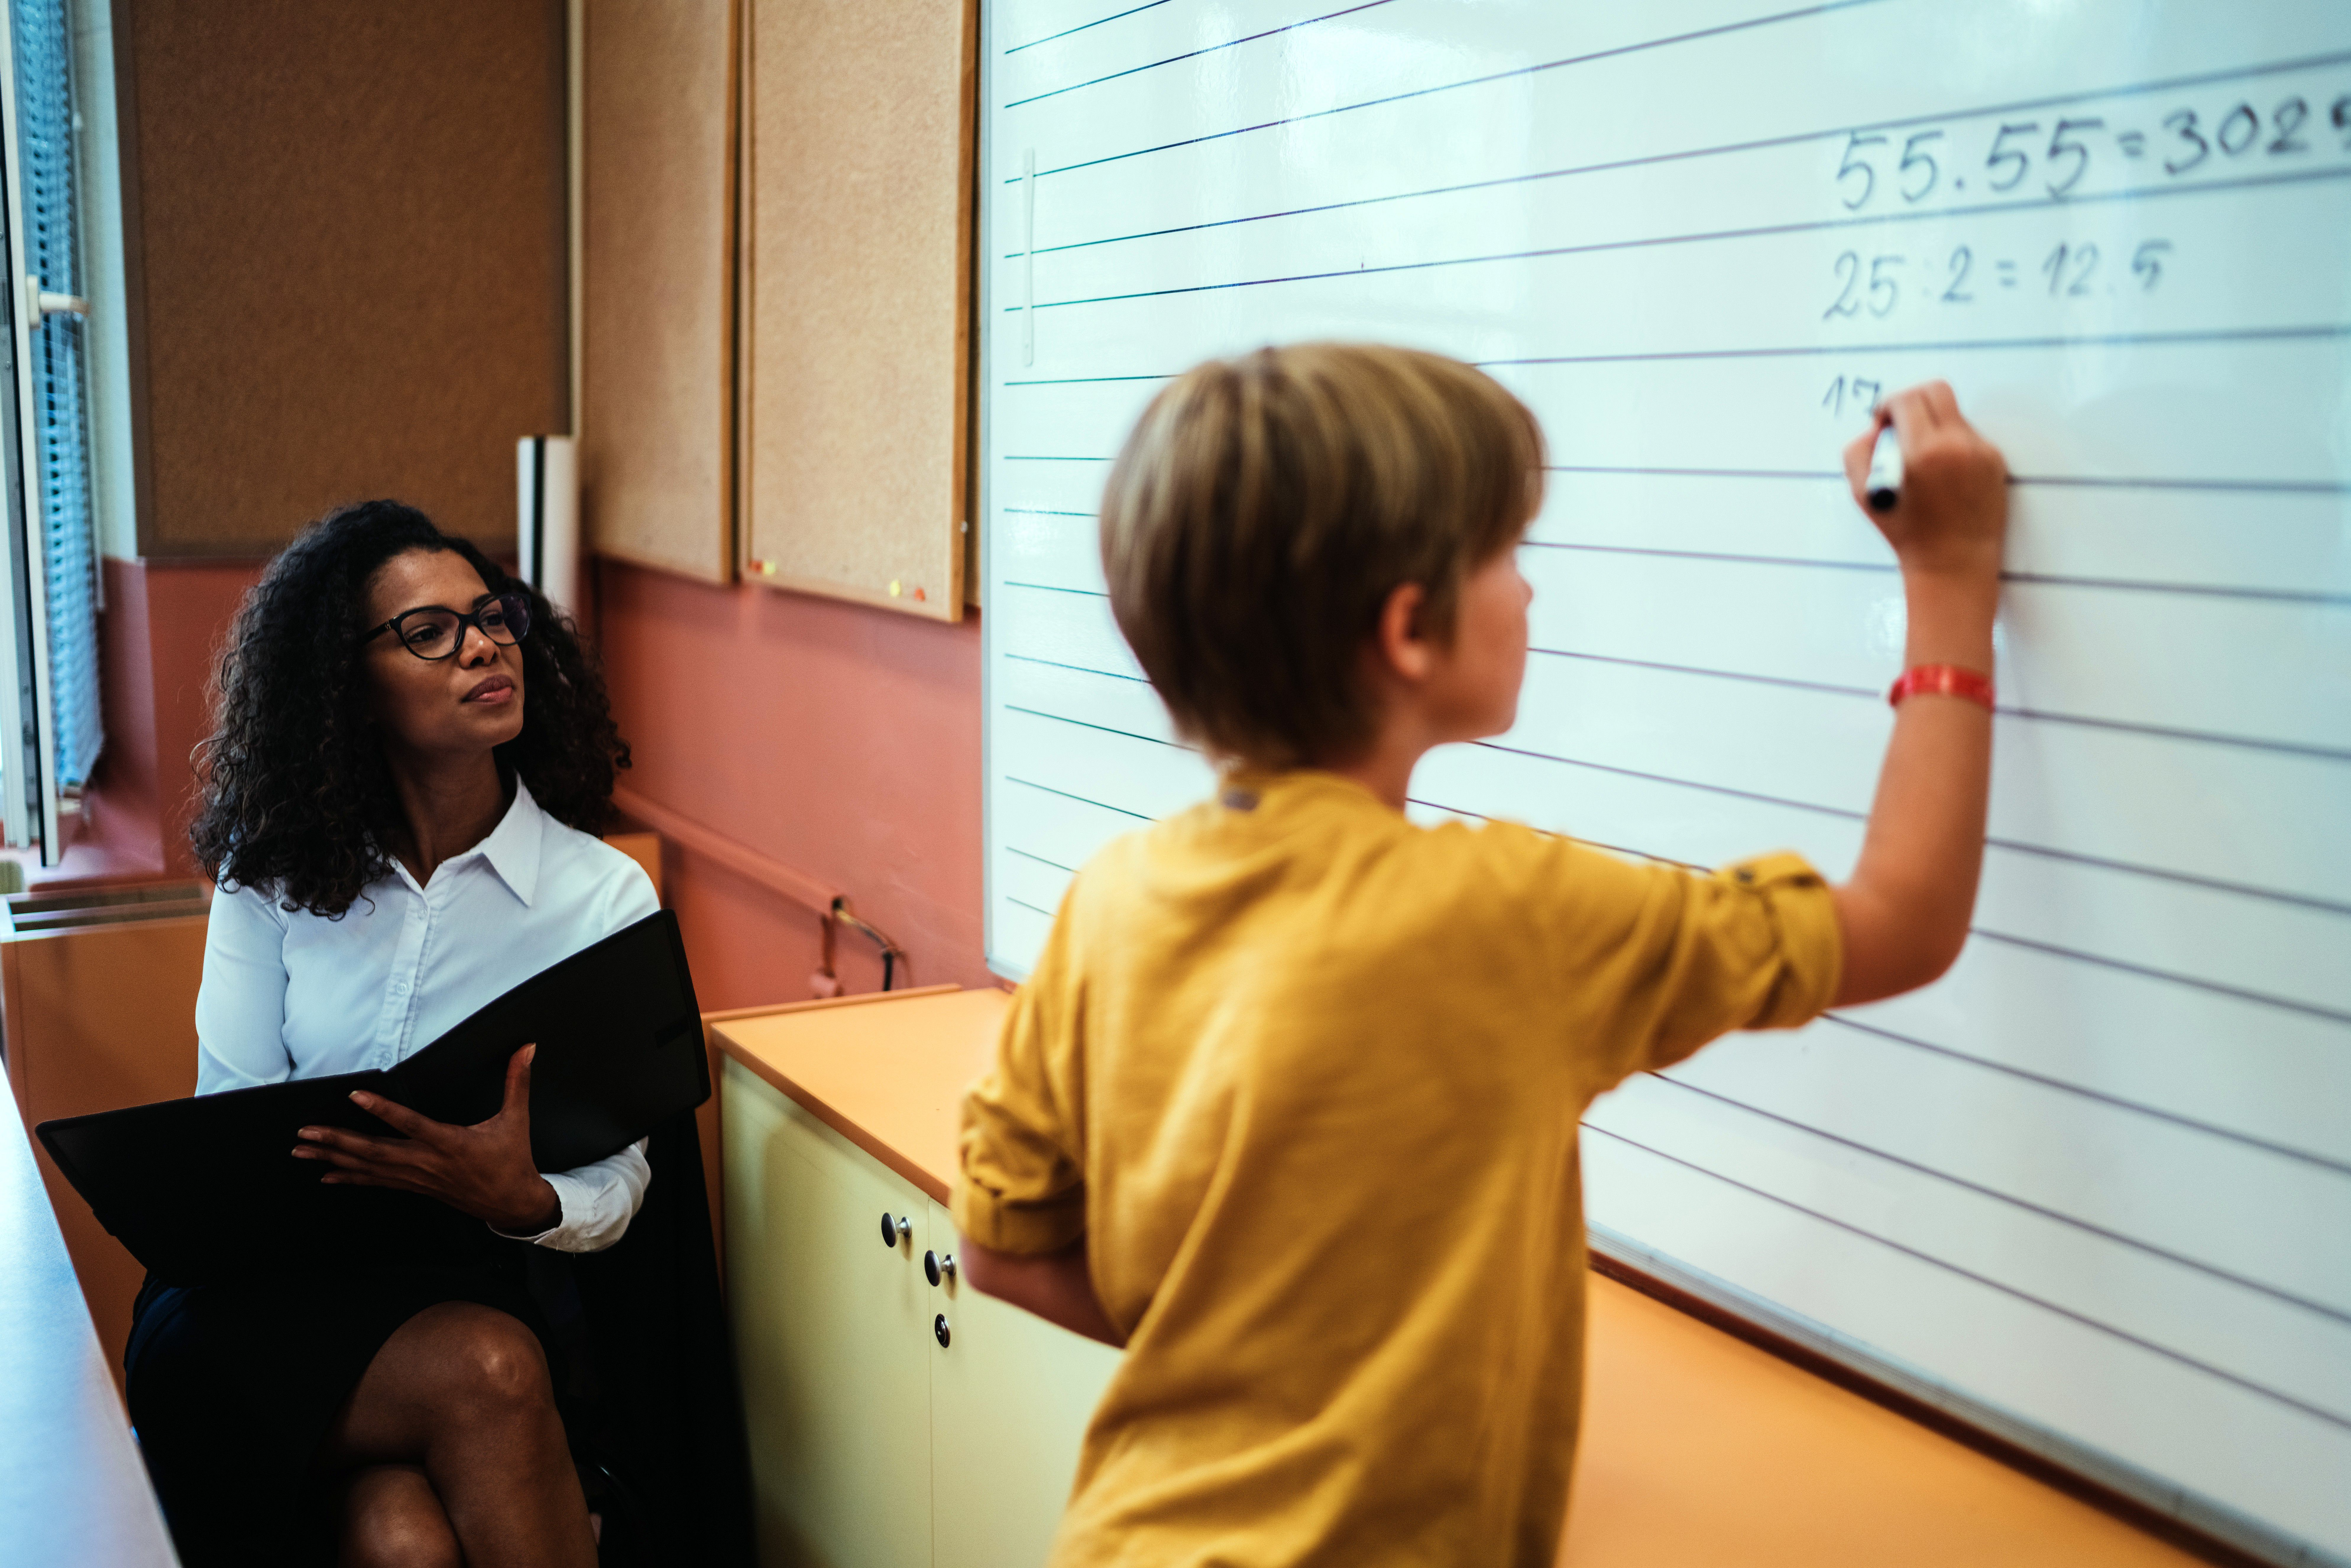 A boy does math problems on the whiteboard under the watchful eye of the teacher